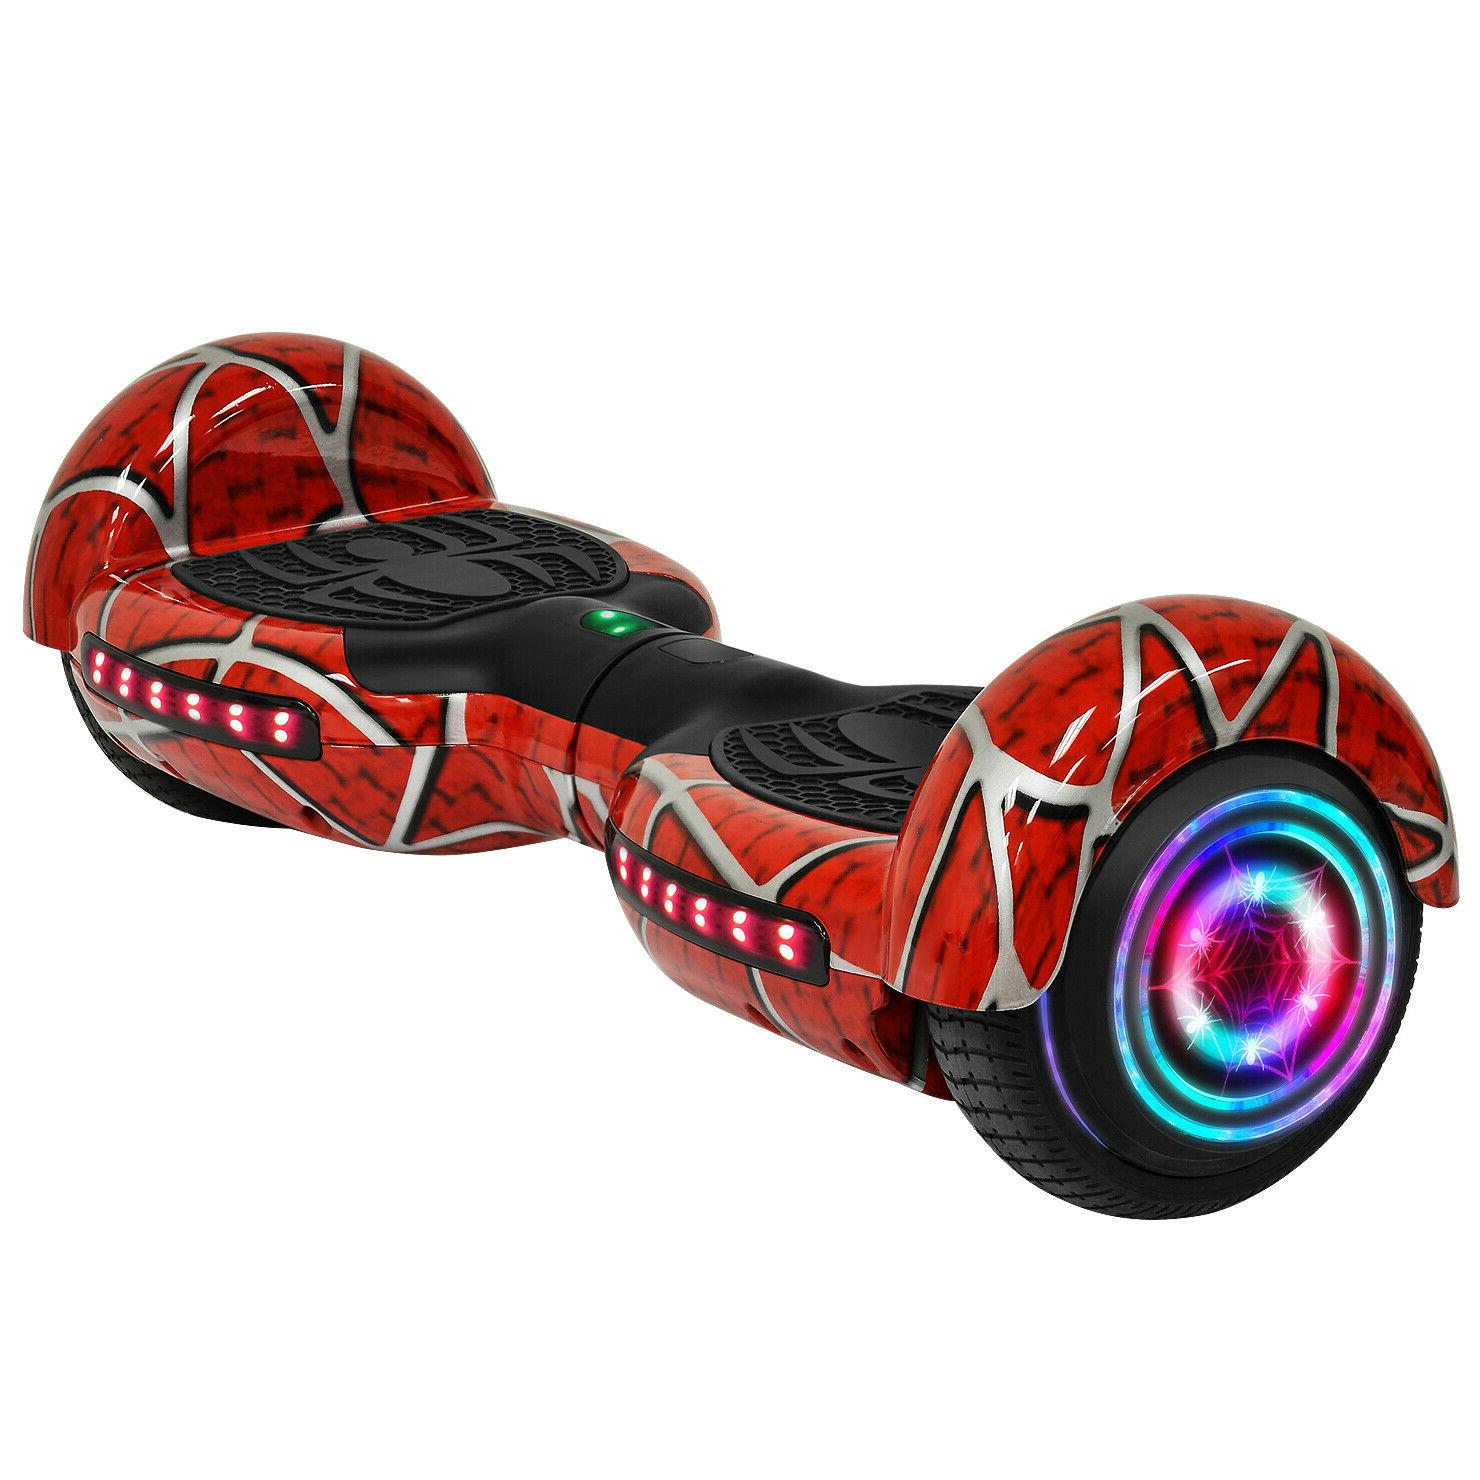 6 5 spider self balancing scooter rgb